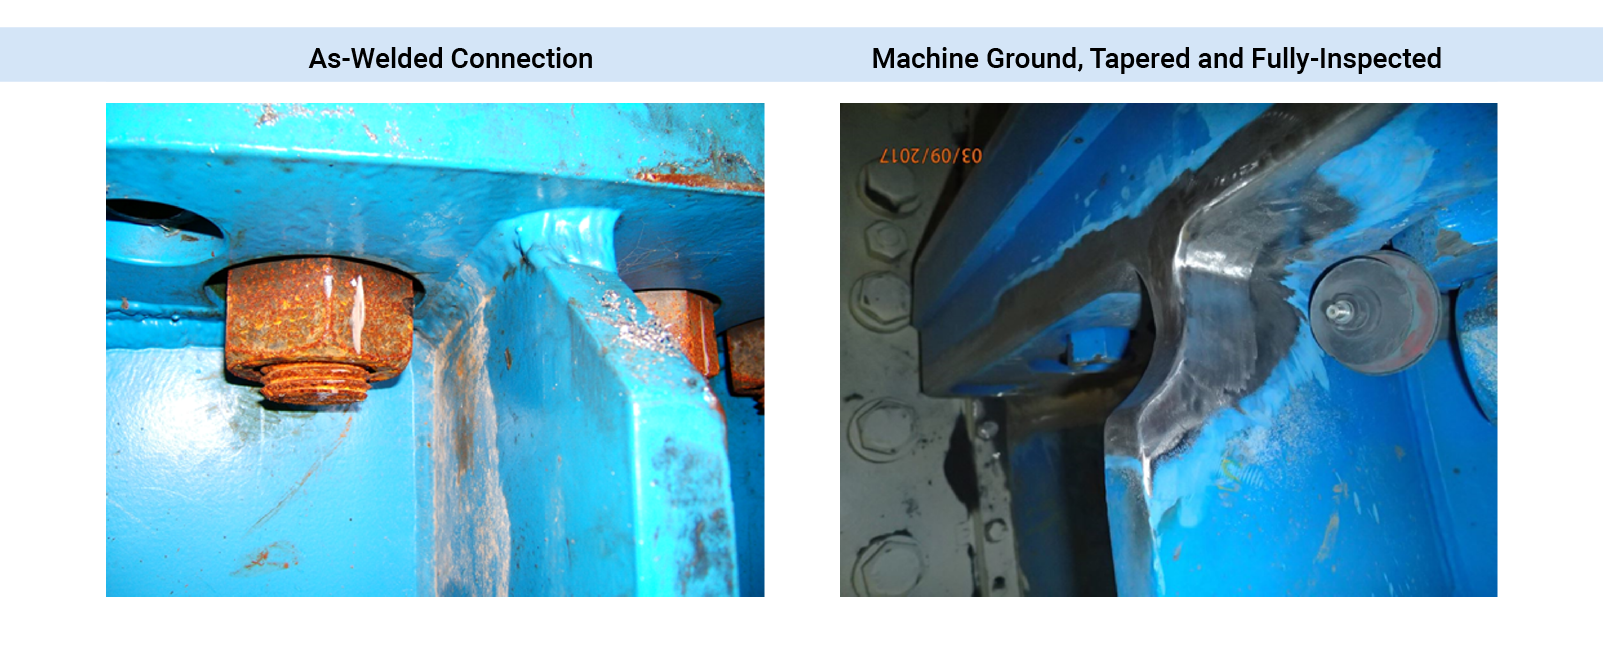 ASME Section VIII Design-by-Analysis Fatigue Classification Weld Quality Levels  As-Welded (4.0) to Machine Profiled, Fully-Inspected (1.0) .PNG